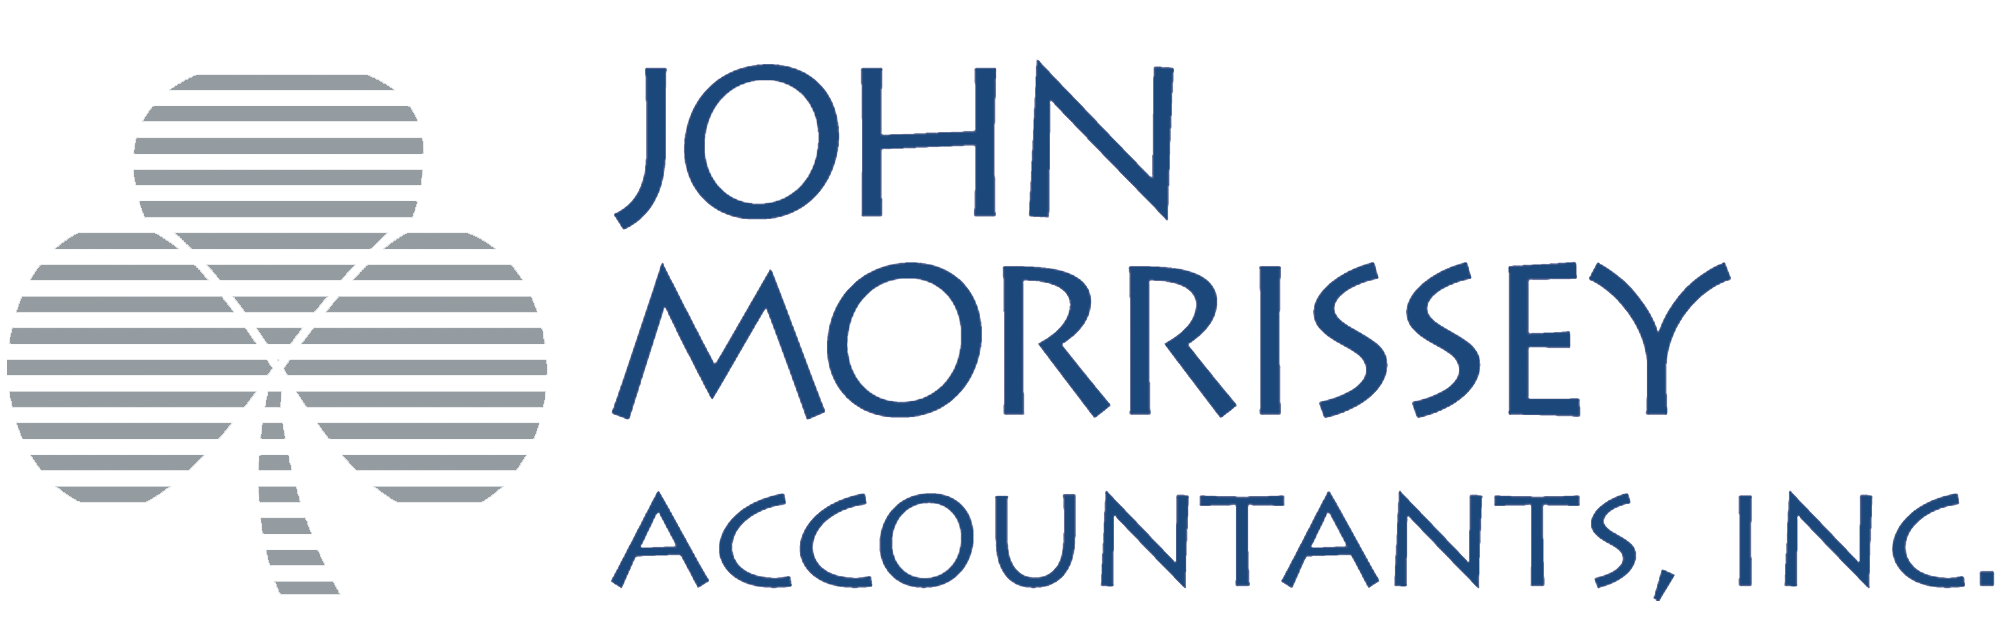 Rockford, IL Accounting Firm | Industries Page | John Morrissey Accountants, Inc.